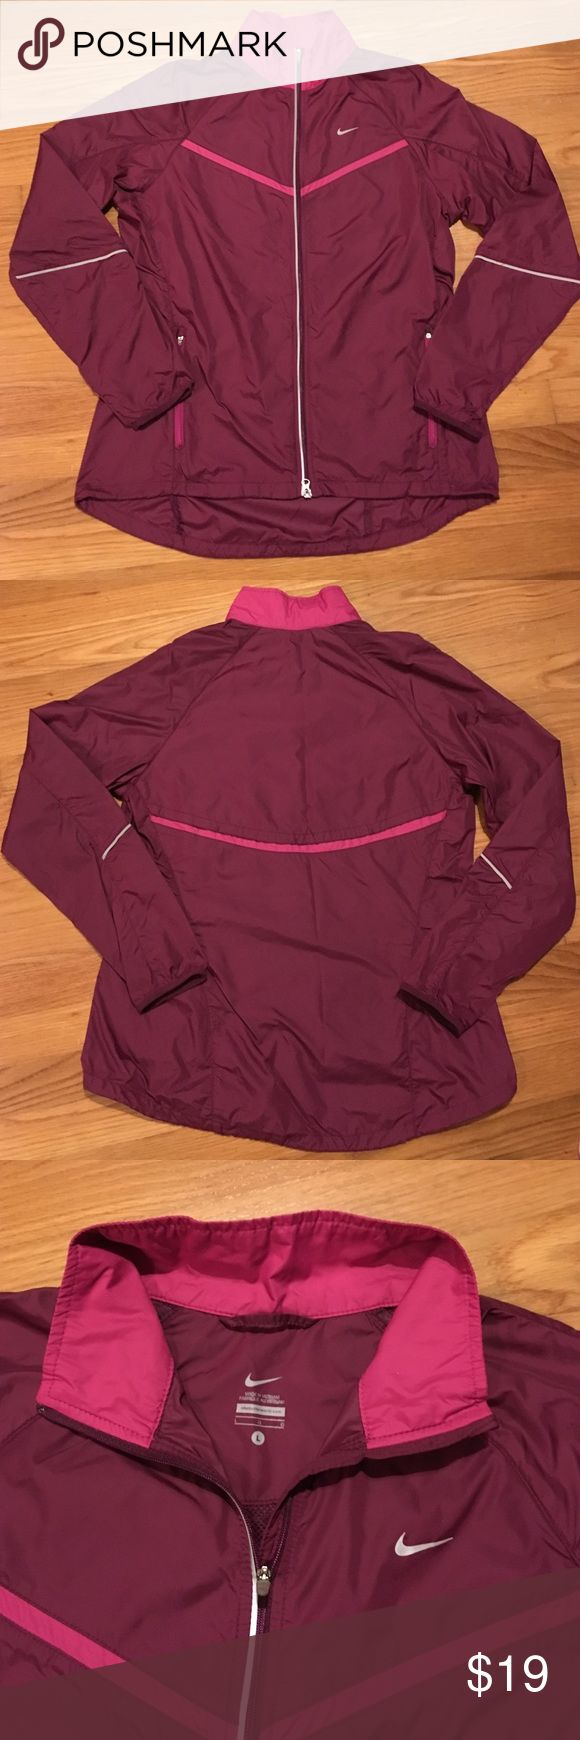 """Nike windbreaker running jacket. Nike windbreaker running jacket. Like new. Size large. Nike running jackets are made longer in the back than front. Shoulder to hem front 25.5"""". Shoulder to hem back 28.5"""". Material is just like the Nike tempo running shorts. Thin lightweight unlined  jacket.  Perfect for cool windy days. Zippered pockets and front with reflective trim on front and back of jacket and sleeves. Maroon color with pink trim. Nike Jackets & Coats"""